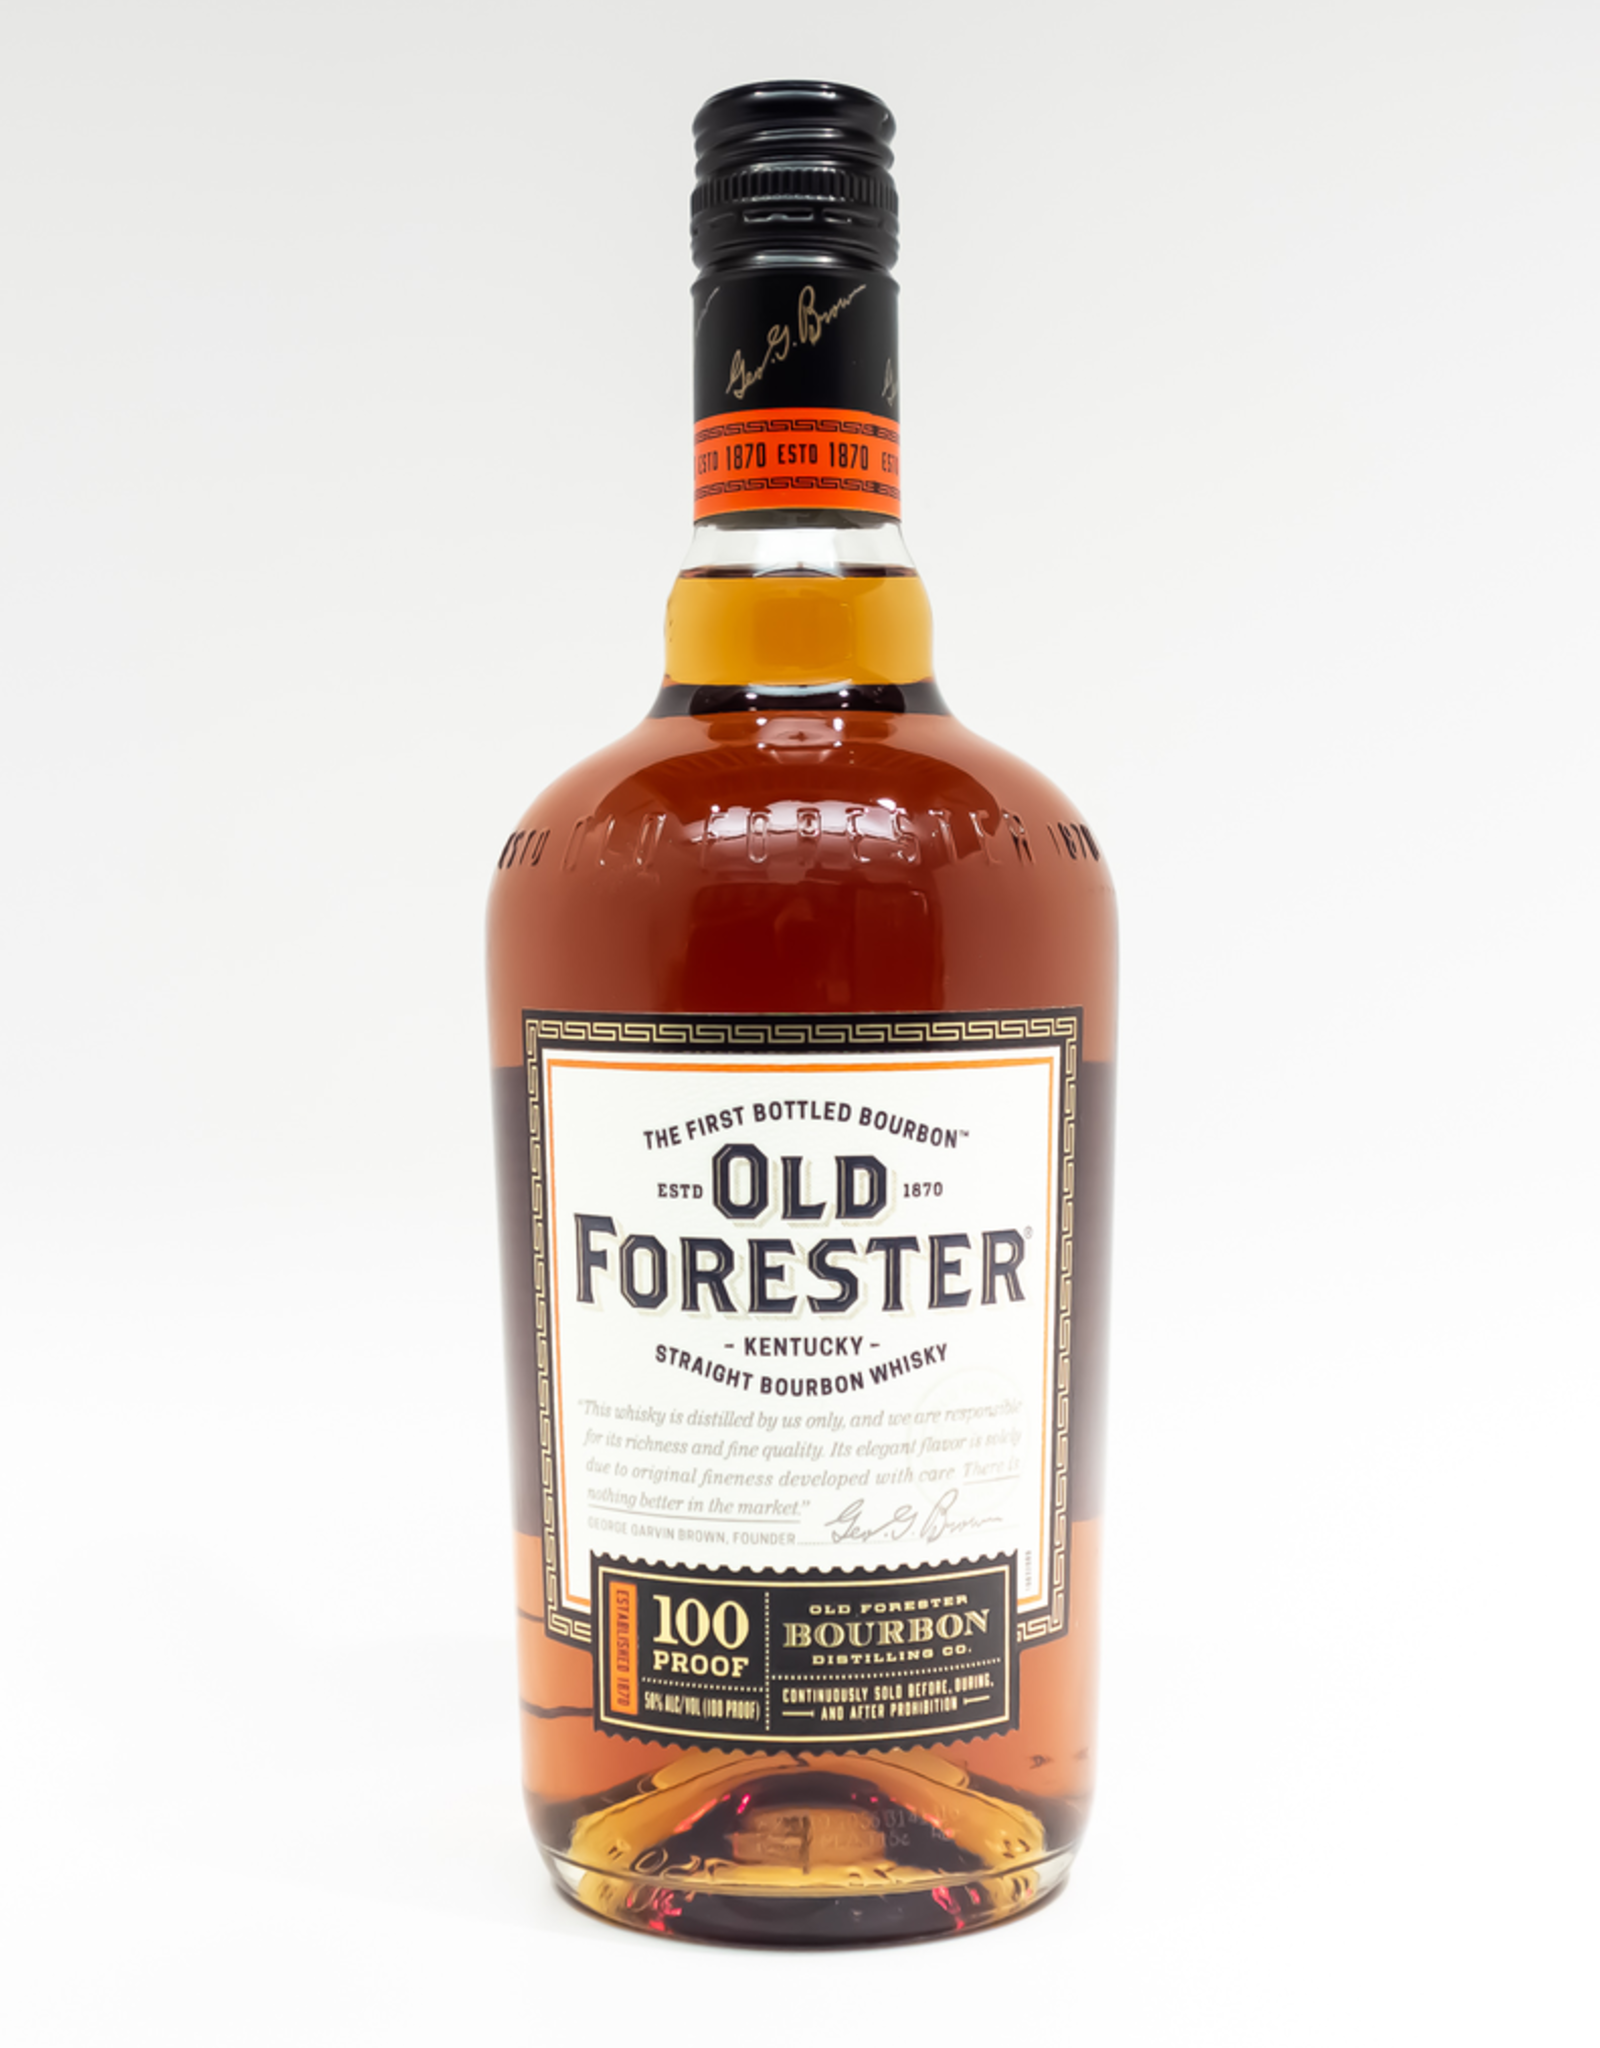 Spirits-Whiskey-Bourbon Old Forester 'Signature' 100 Proof 750ml